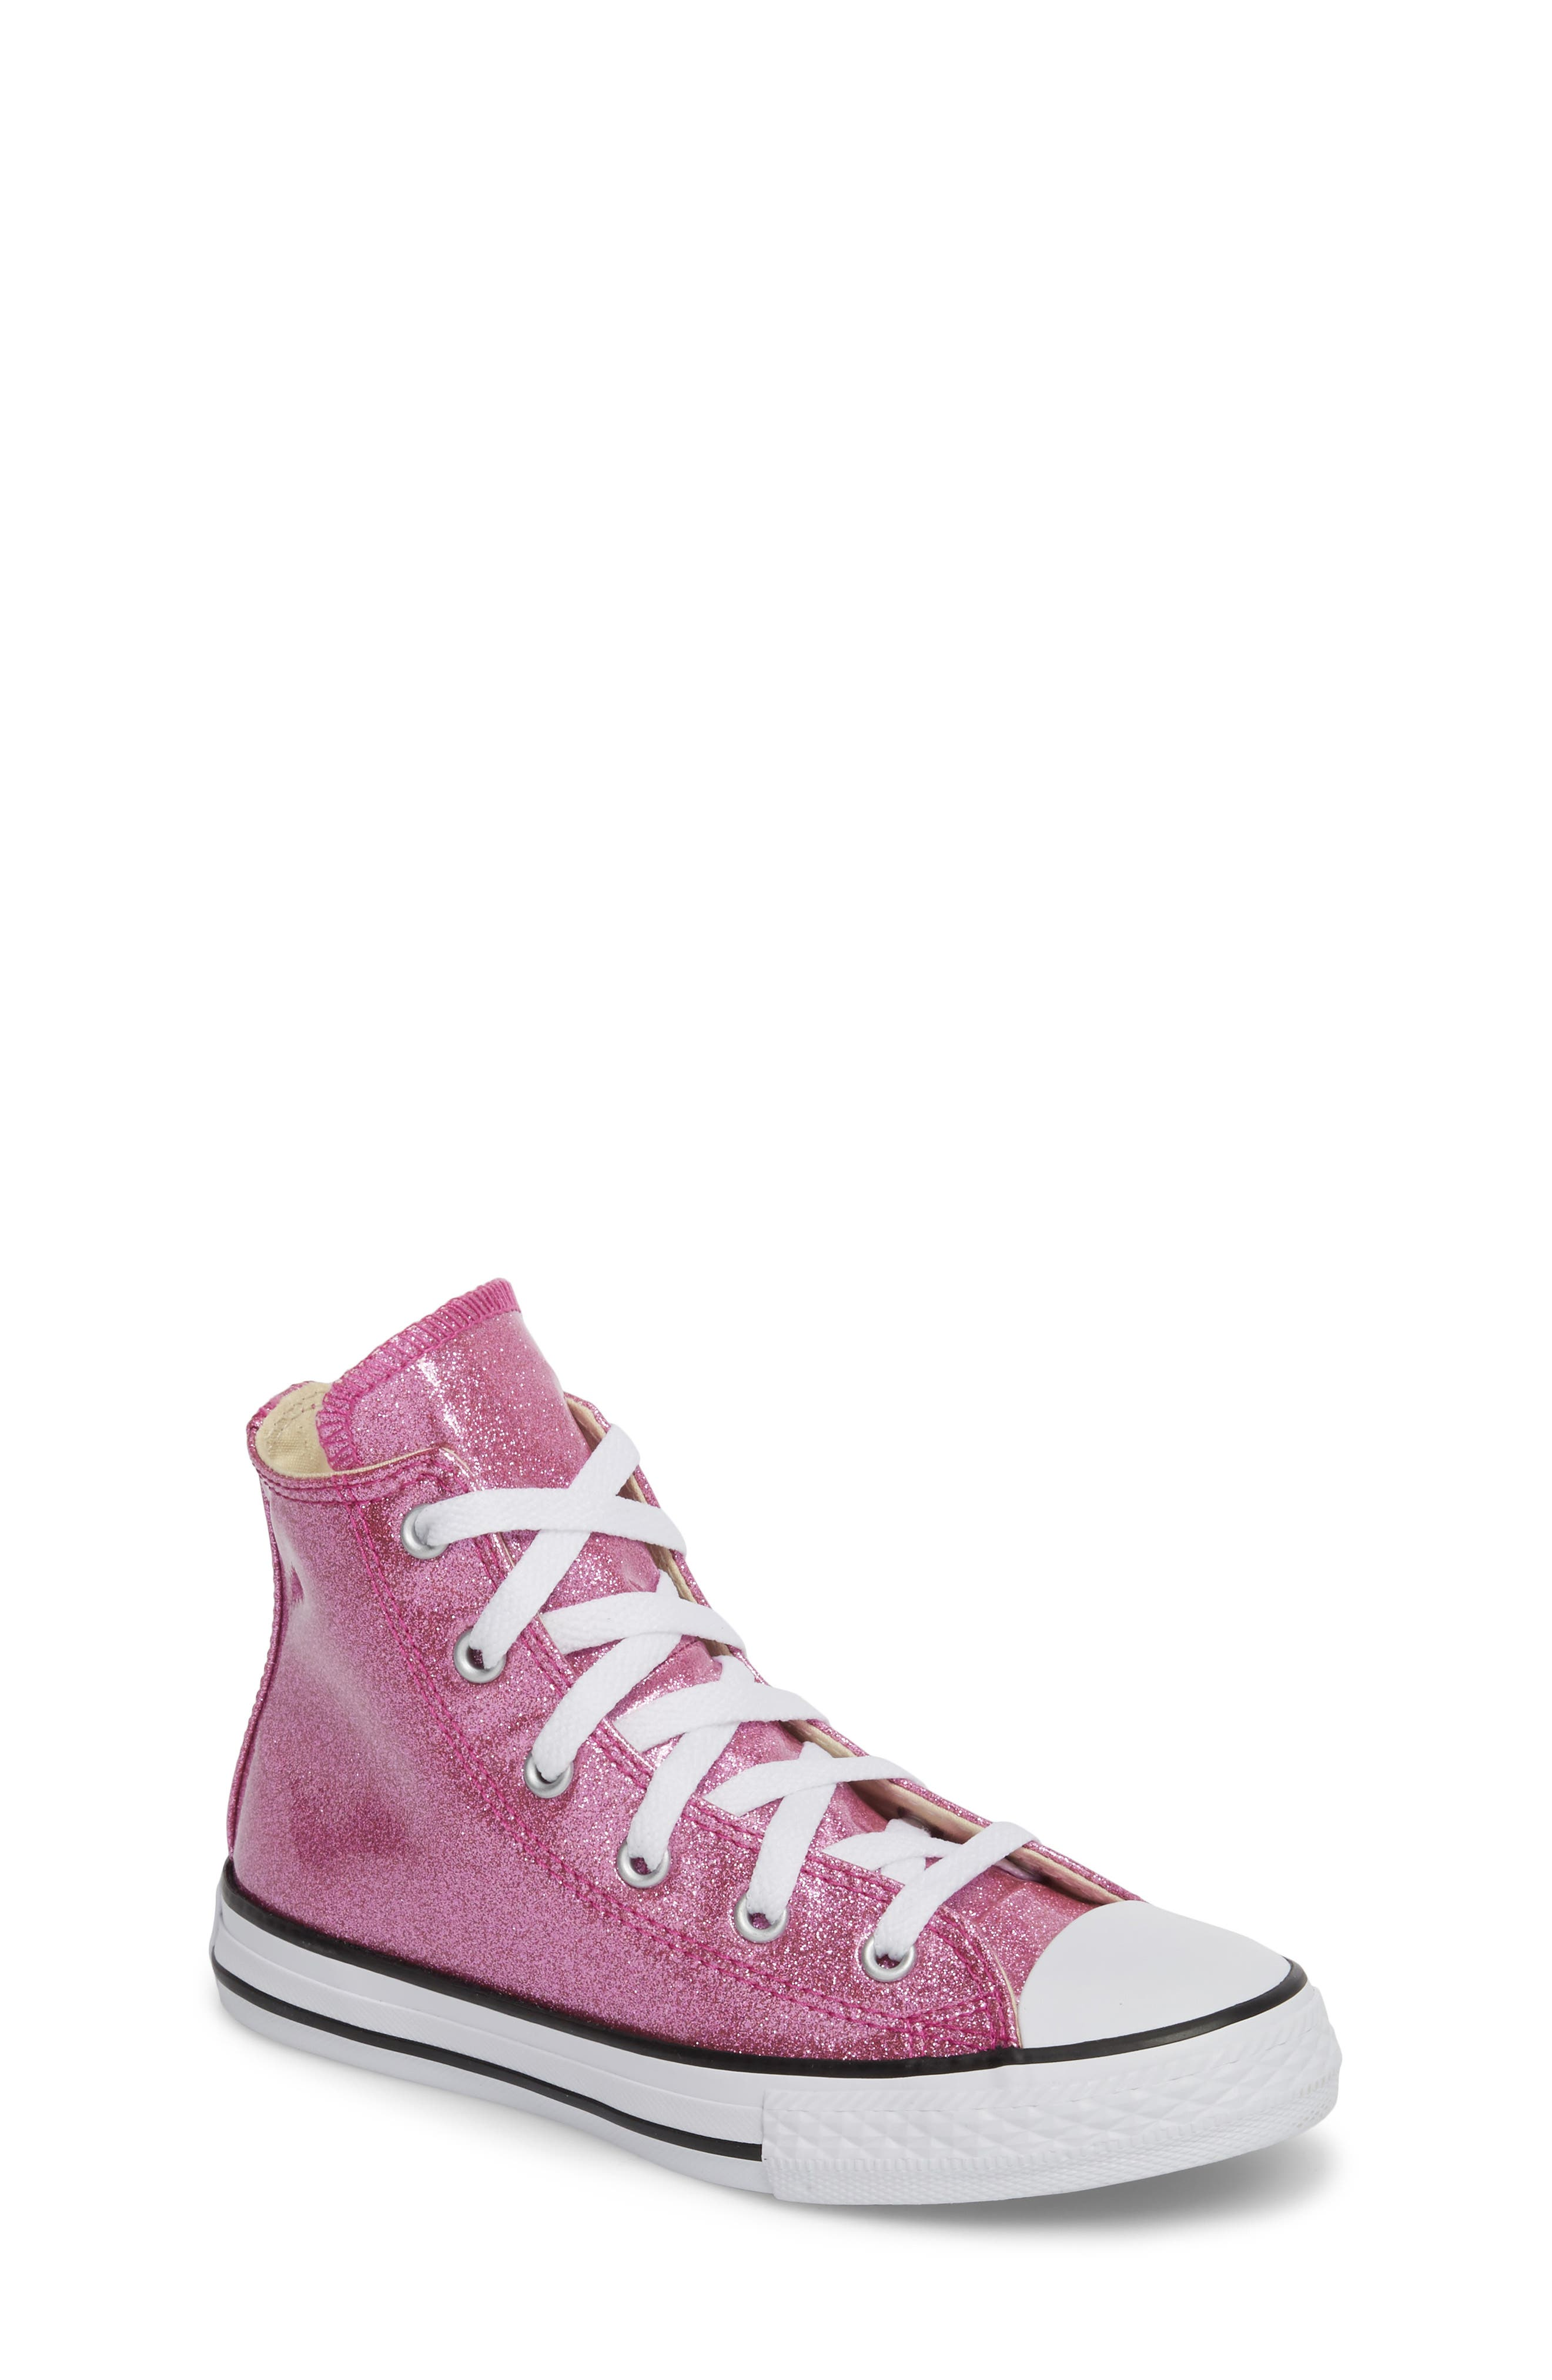 All Star<sup>®</sup> Glitter High Top Sneaker,                             Main thumbnail 1, color,                             Bright Violet